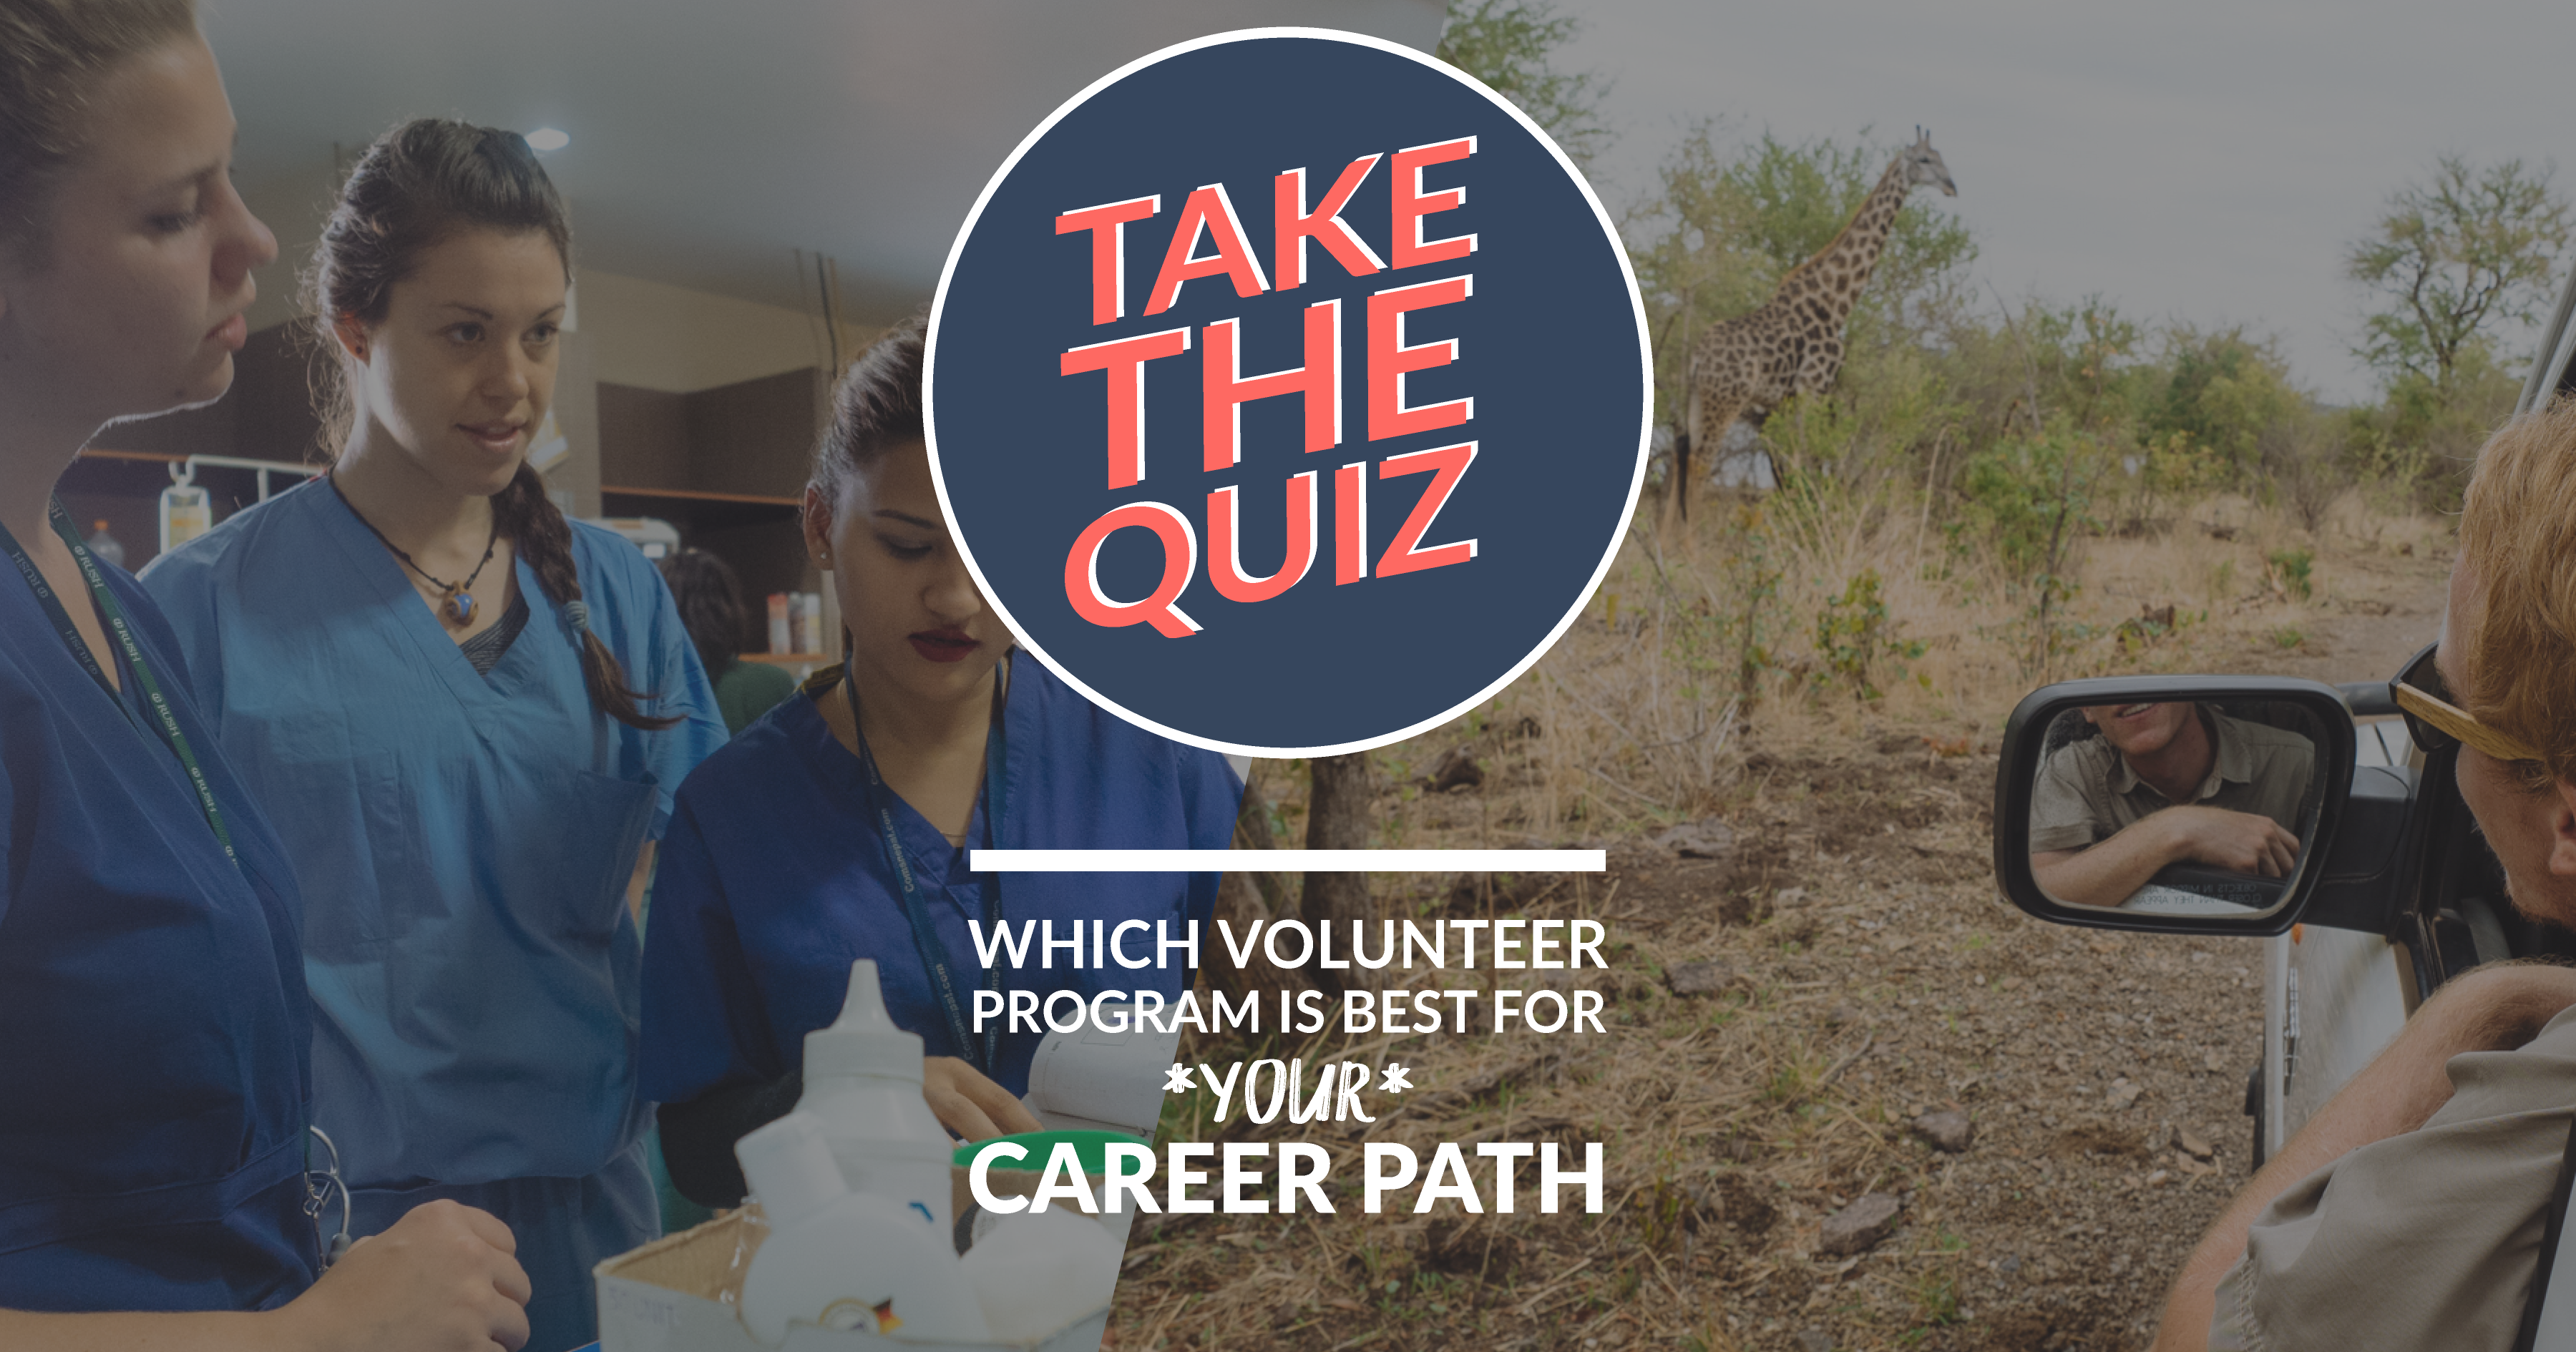 QUIZ: Which Volunteer Program Is Best For Your Career Path?